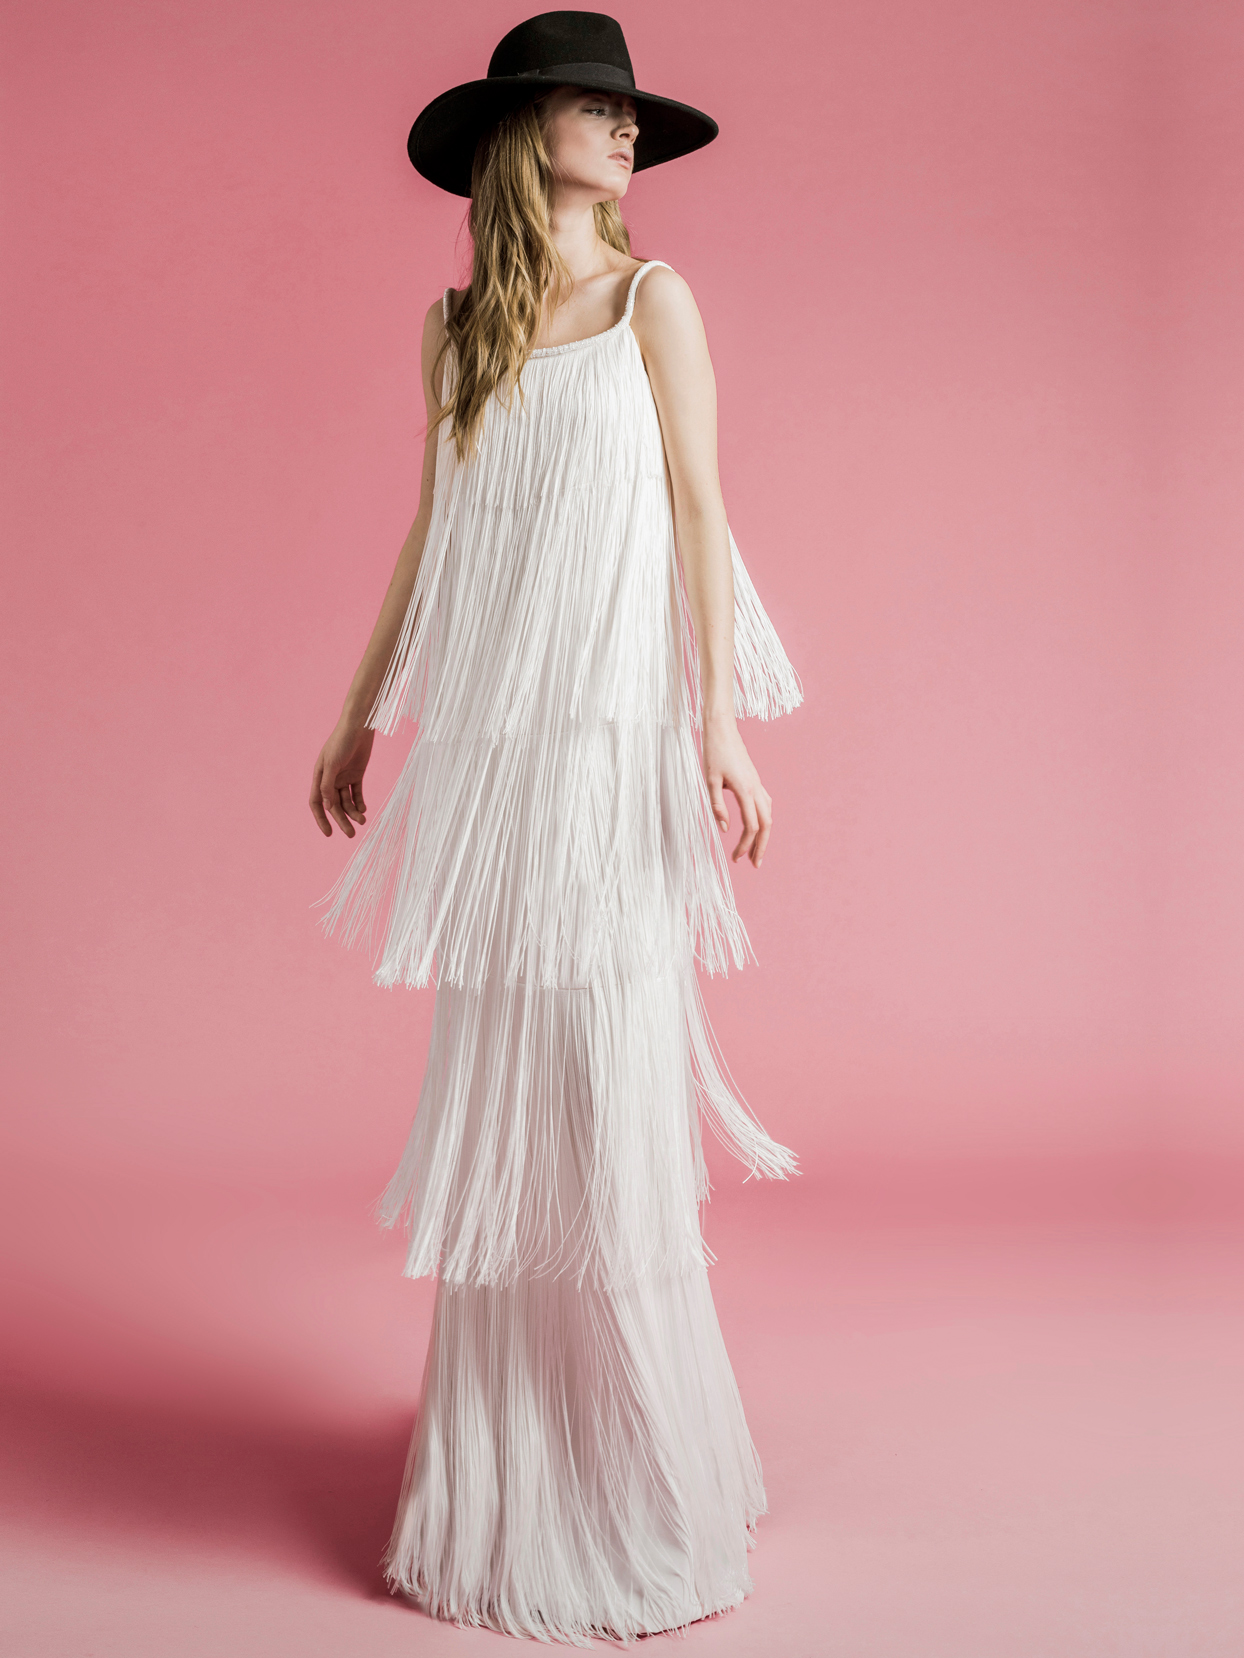 Sophie Et Voilà layered fringe wedding dress spring 2021